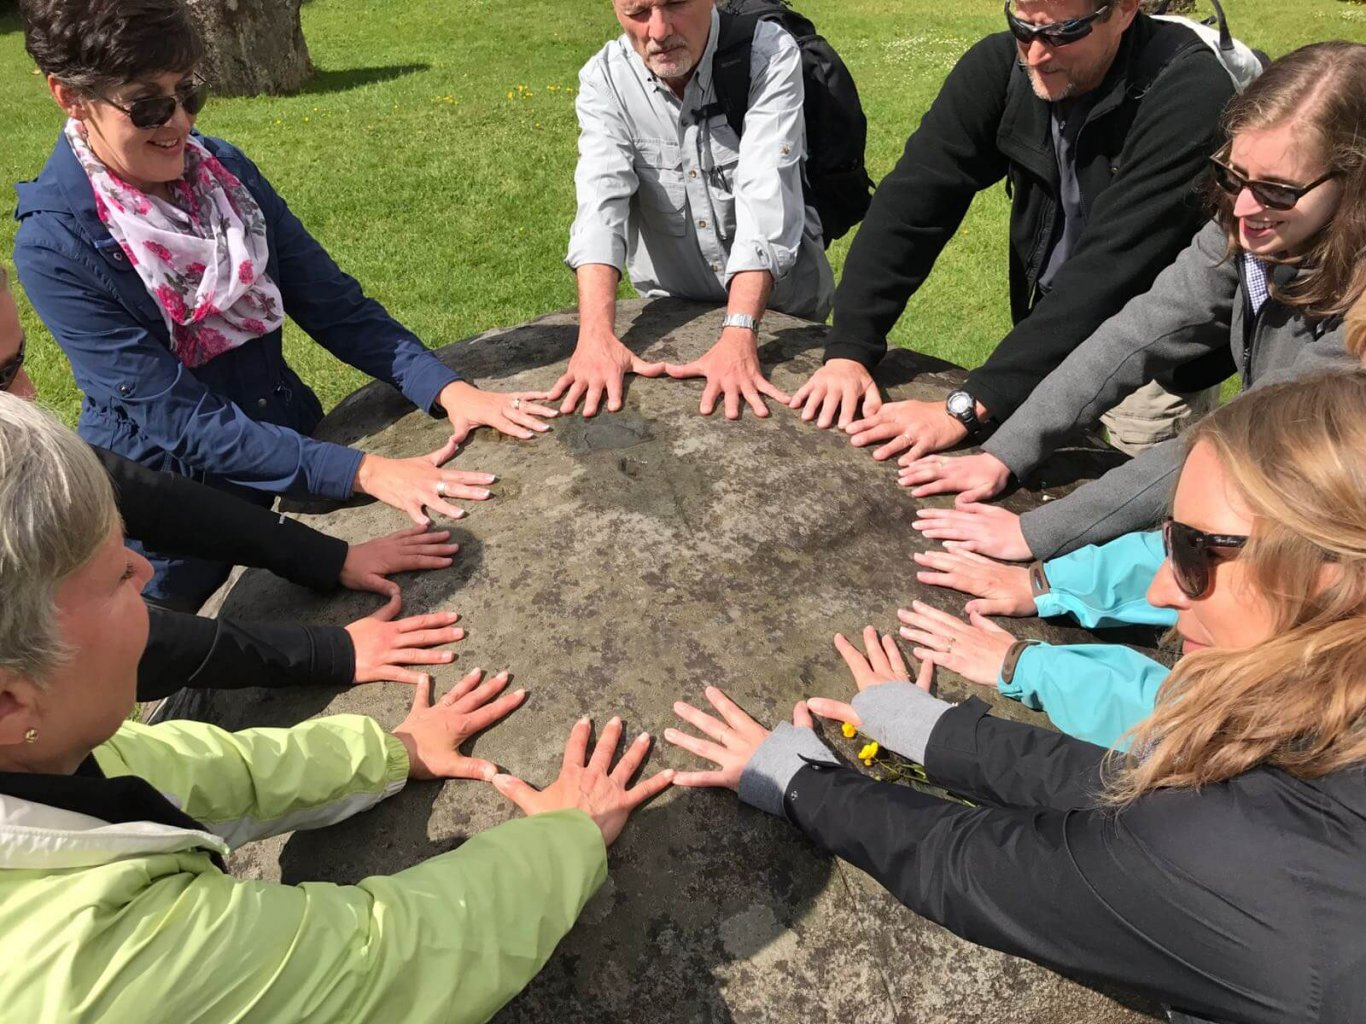 Driftwood tour group place their hands on an ancient stone